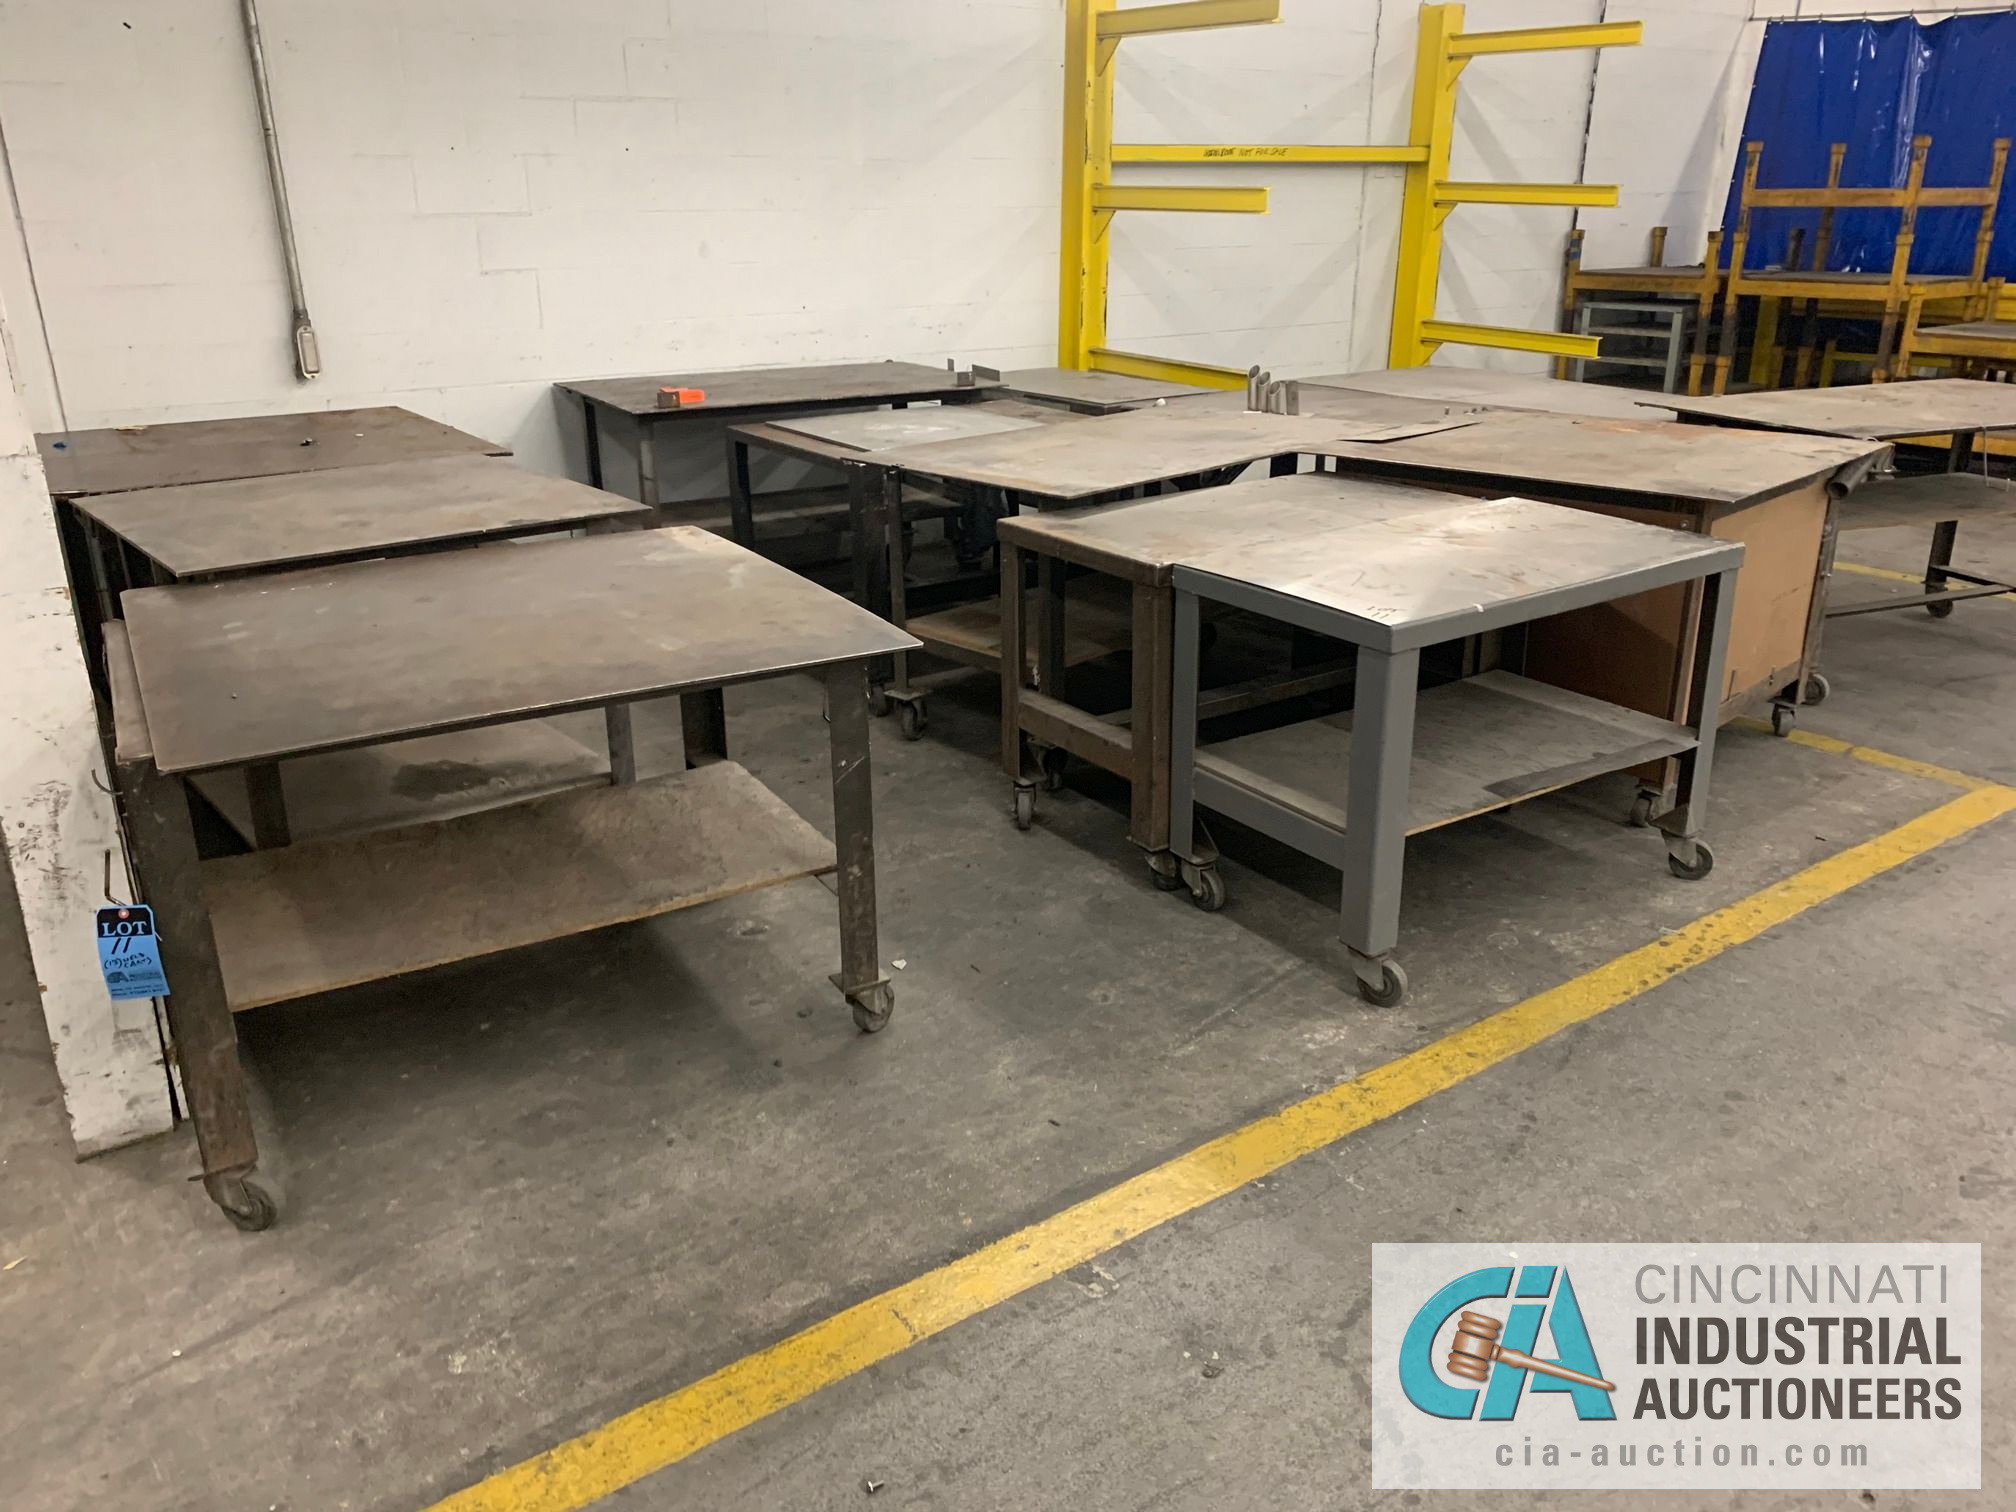 VARIOUS HEAVY DUTY CARTS, SOME SET-UP TO BE HEAVY WELD TABLES